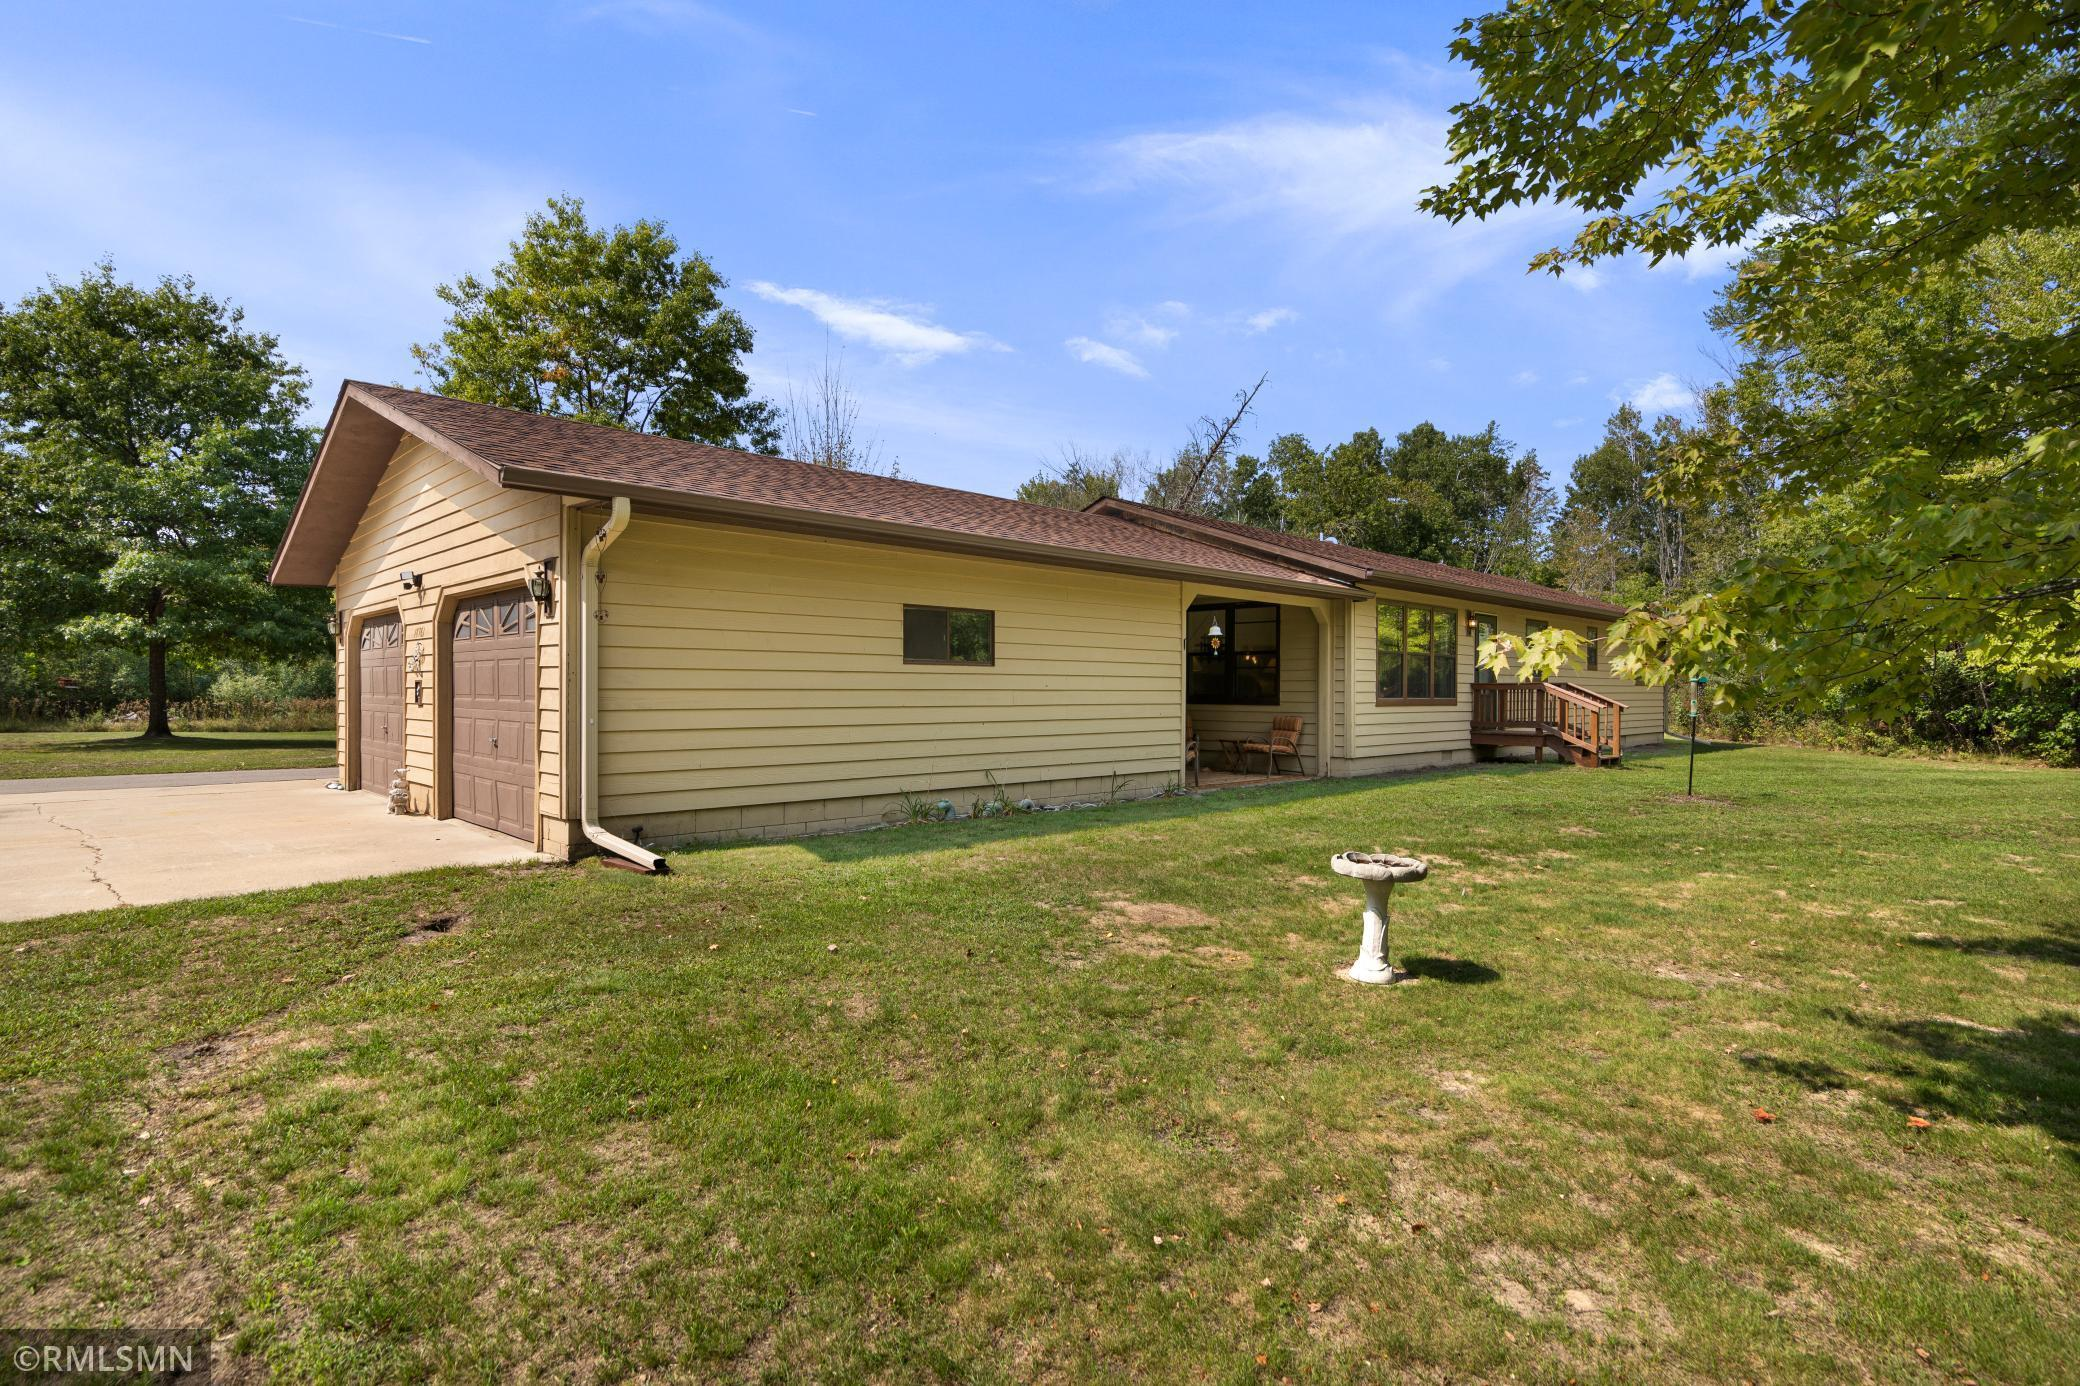 This 1 level, 3 bedroom, 2 bath home sits on 3.75 beautiful acres and offers main-floor laundry, private master bath, updated interior, large deck, covered porch, and loads of seclusion just mere minutes from town.  Enjoy the Paul Bunyan Trail right out your back door!  Don't miss this rare opportunity!